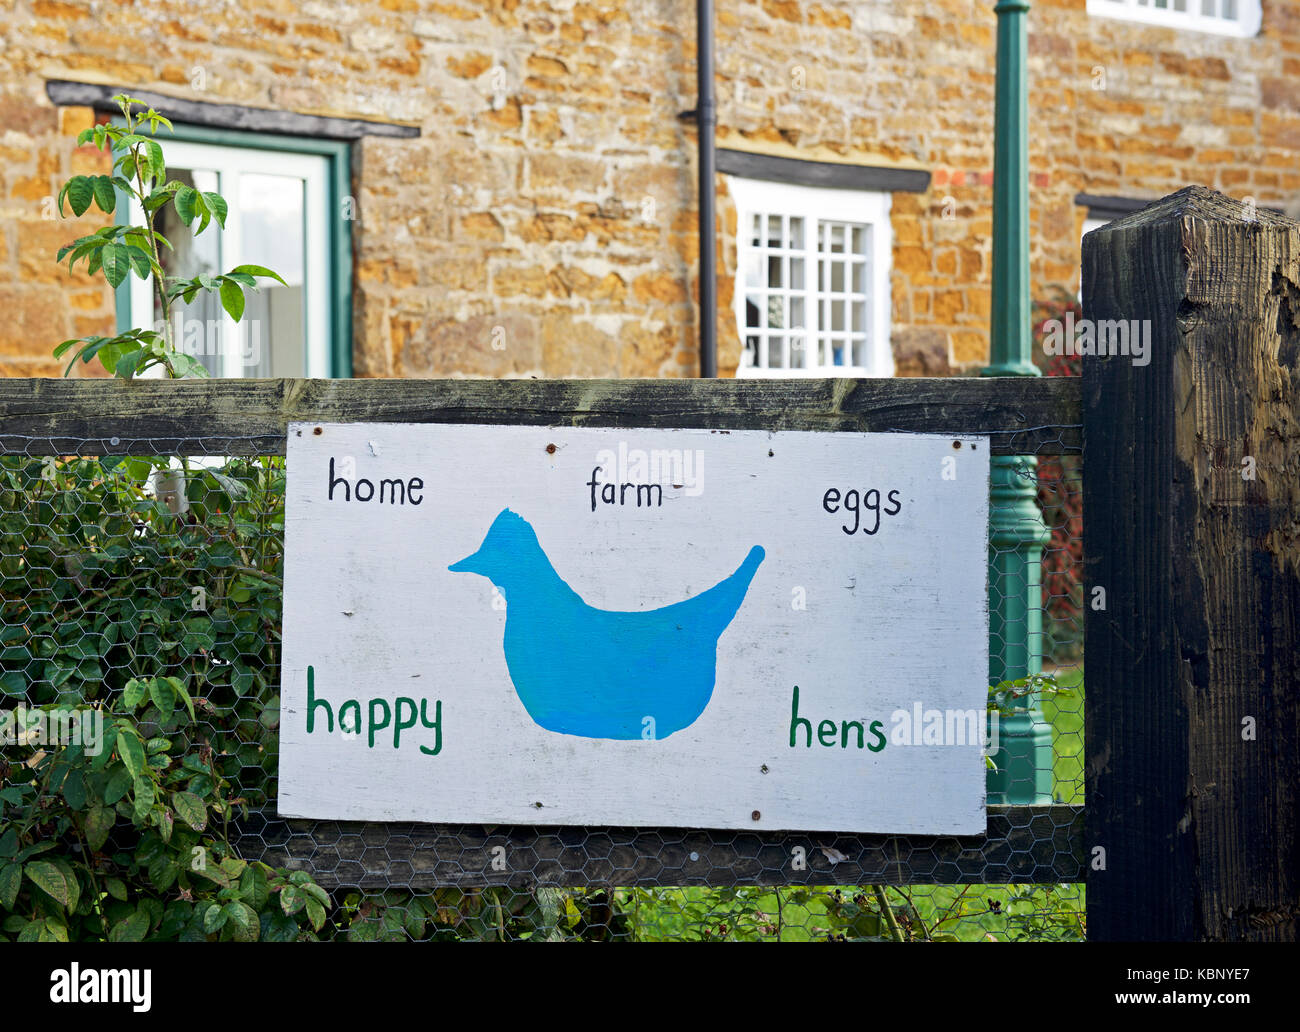 Sign - eggs from happy hens - England UK - Stock Image